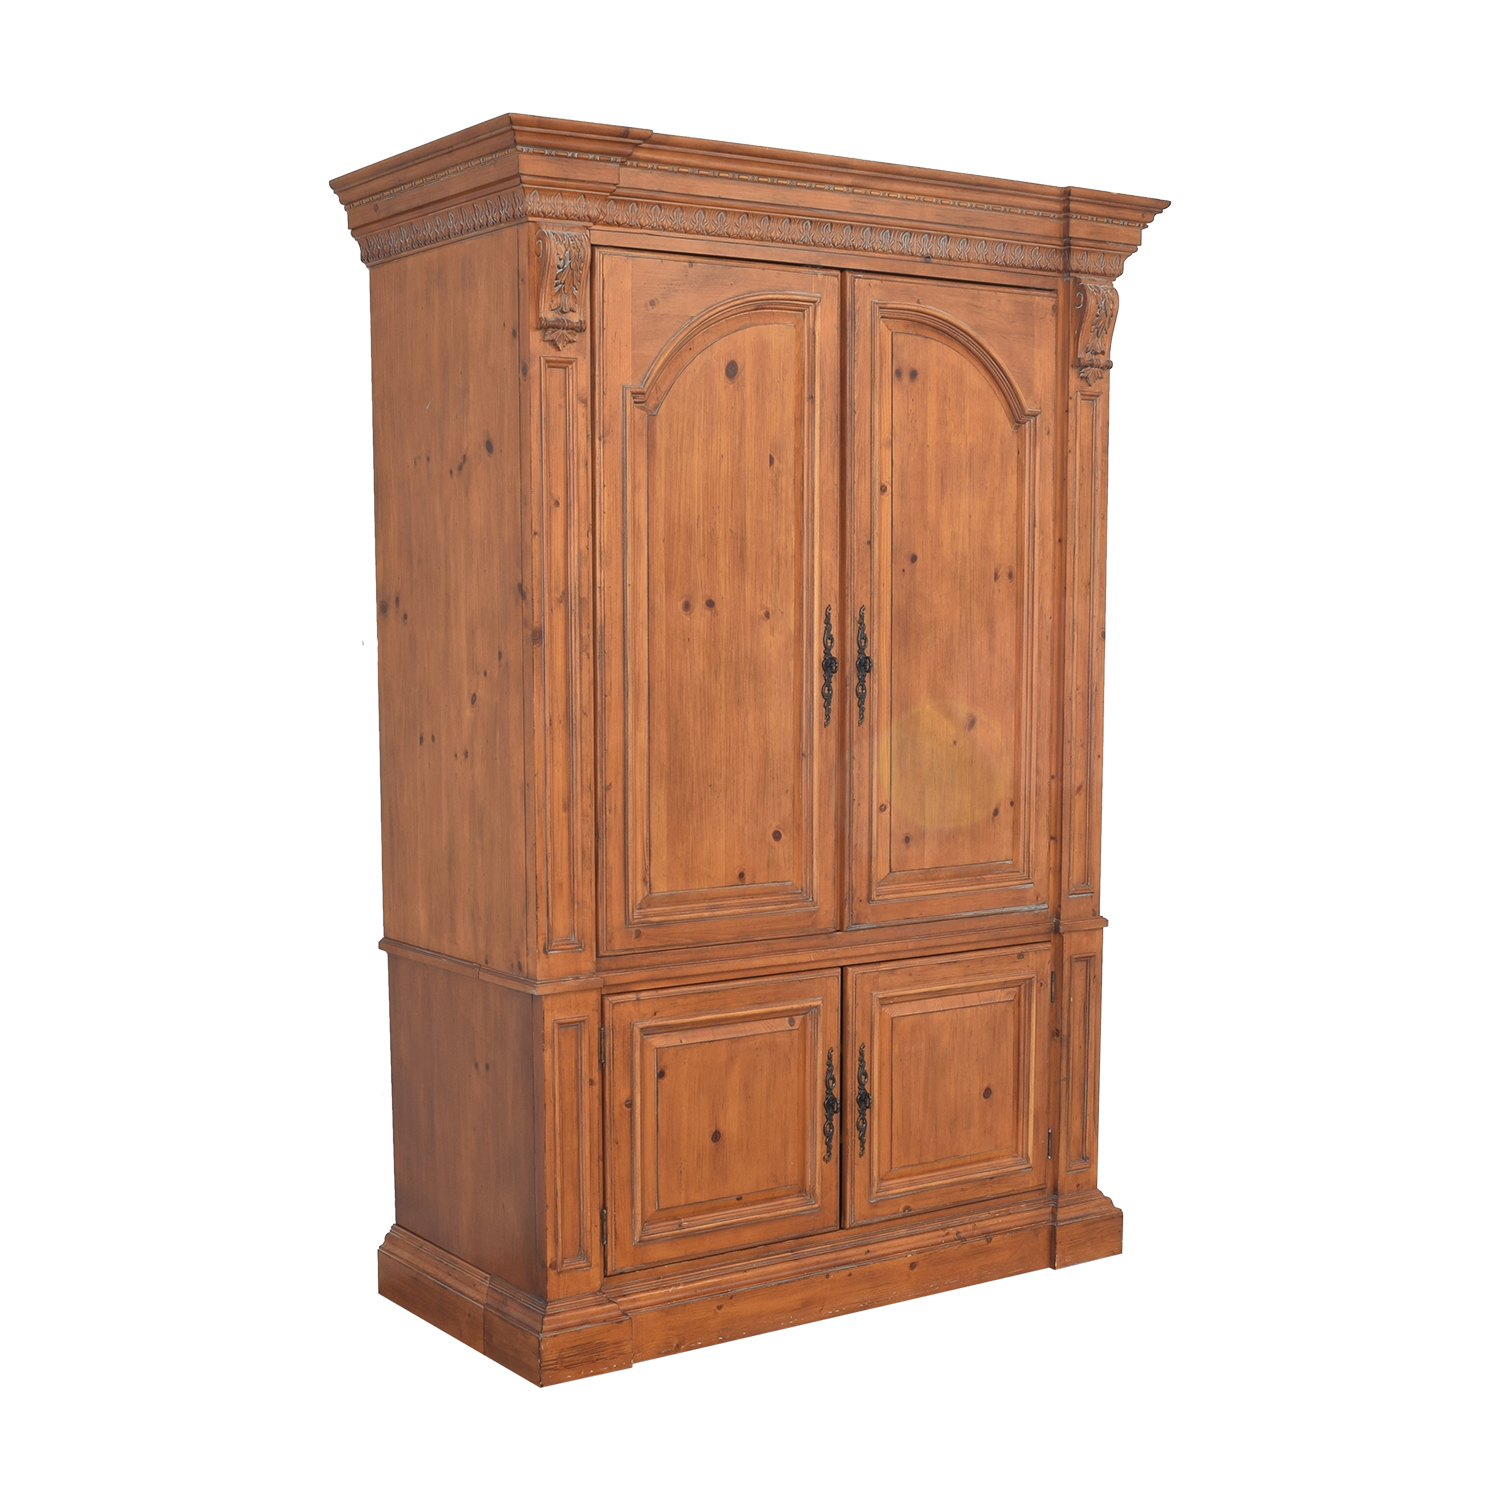 Ethan Allen Ethan Allen Grand Armoire brown